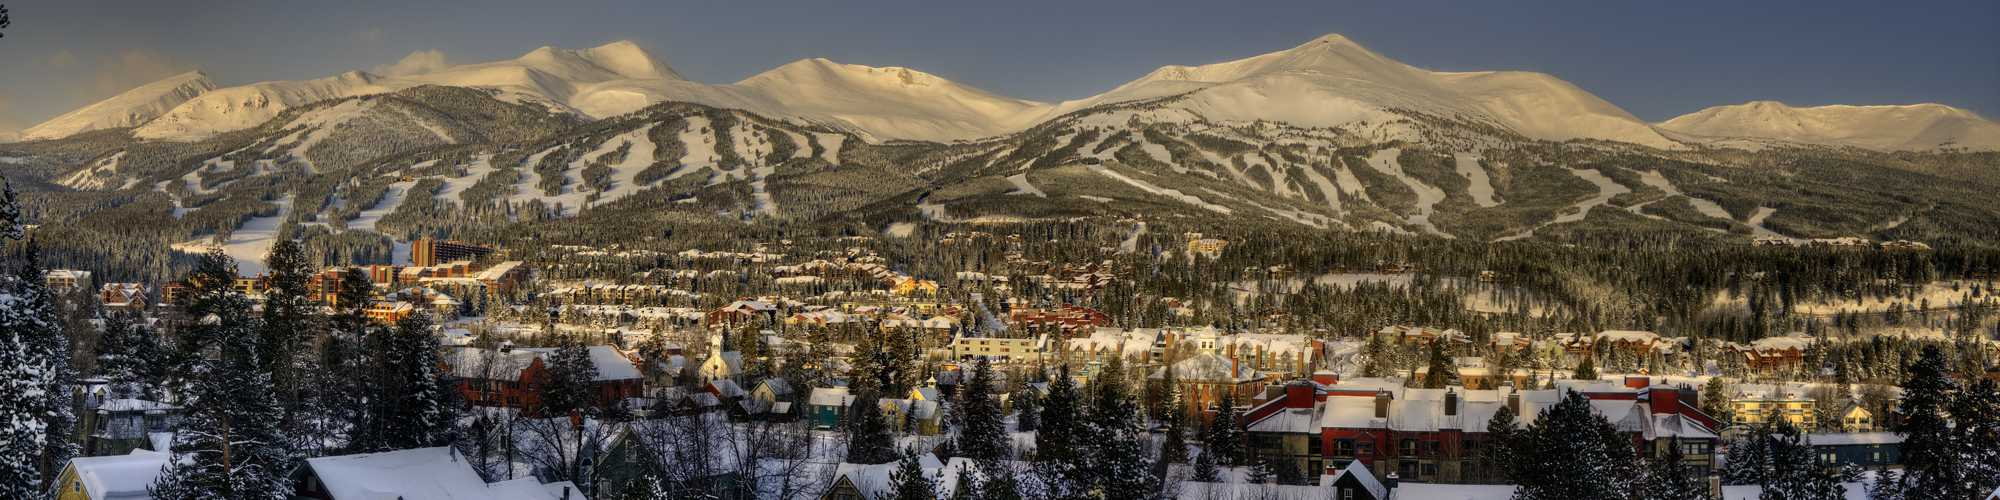 Snowy town of Breckenridge